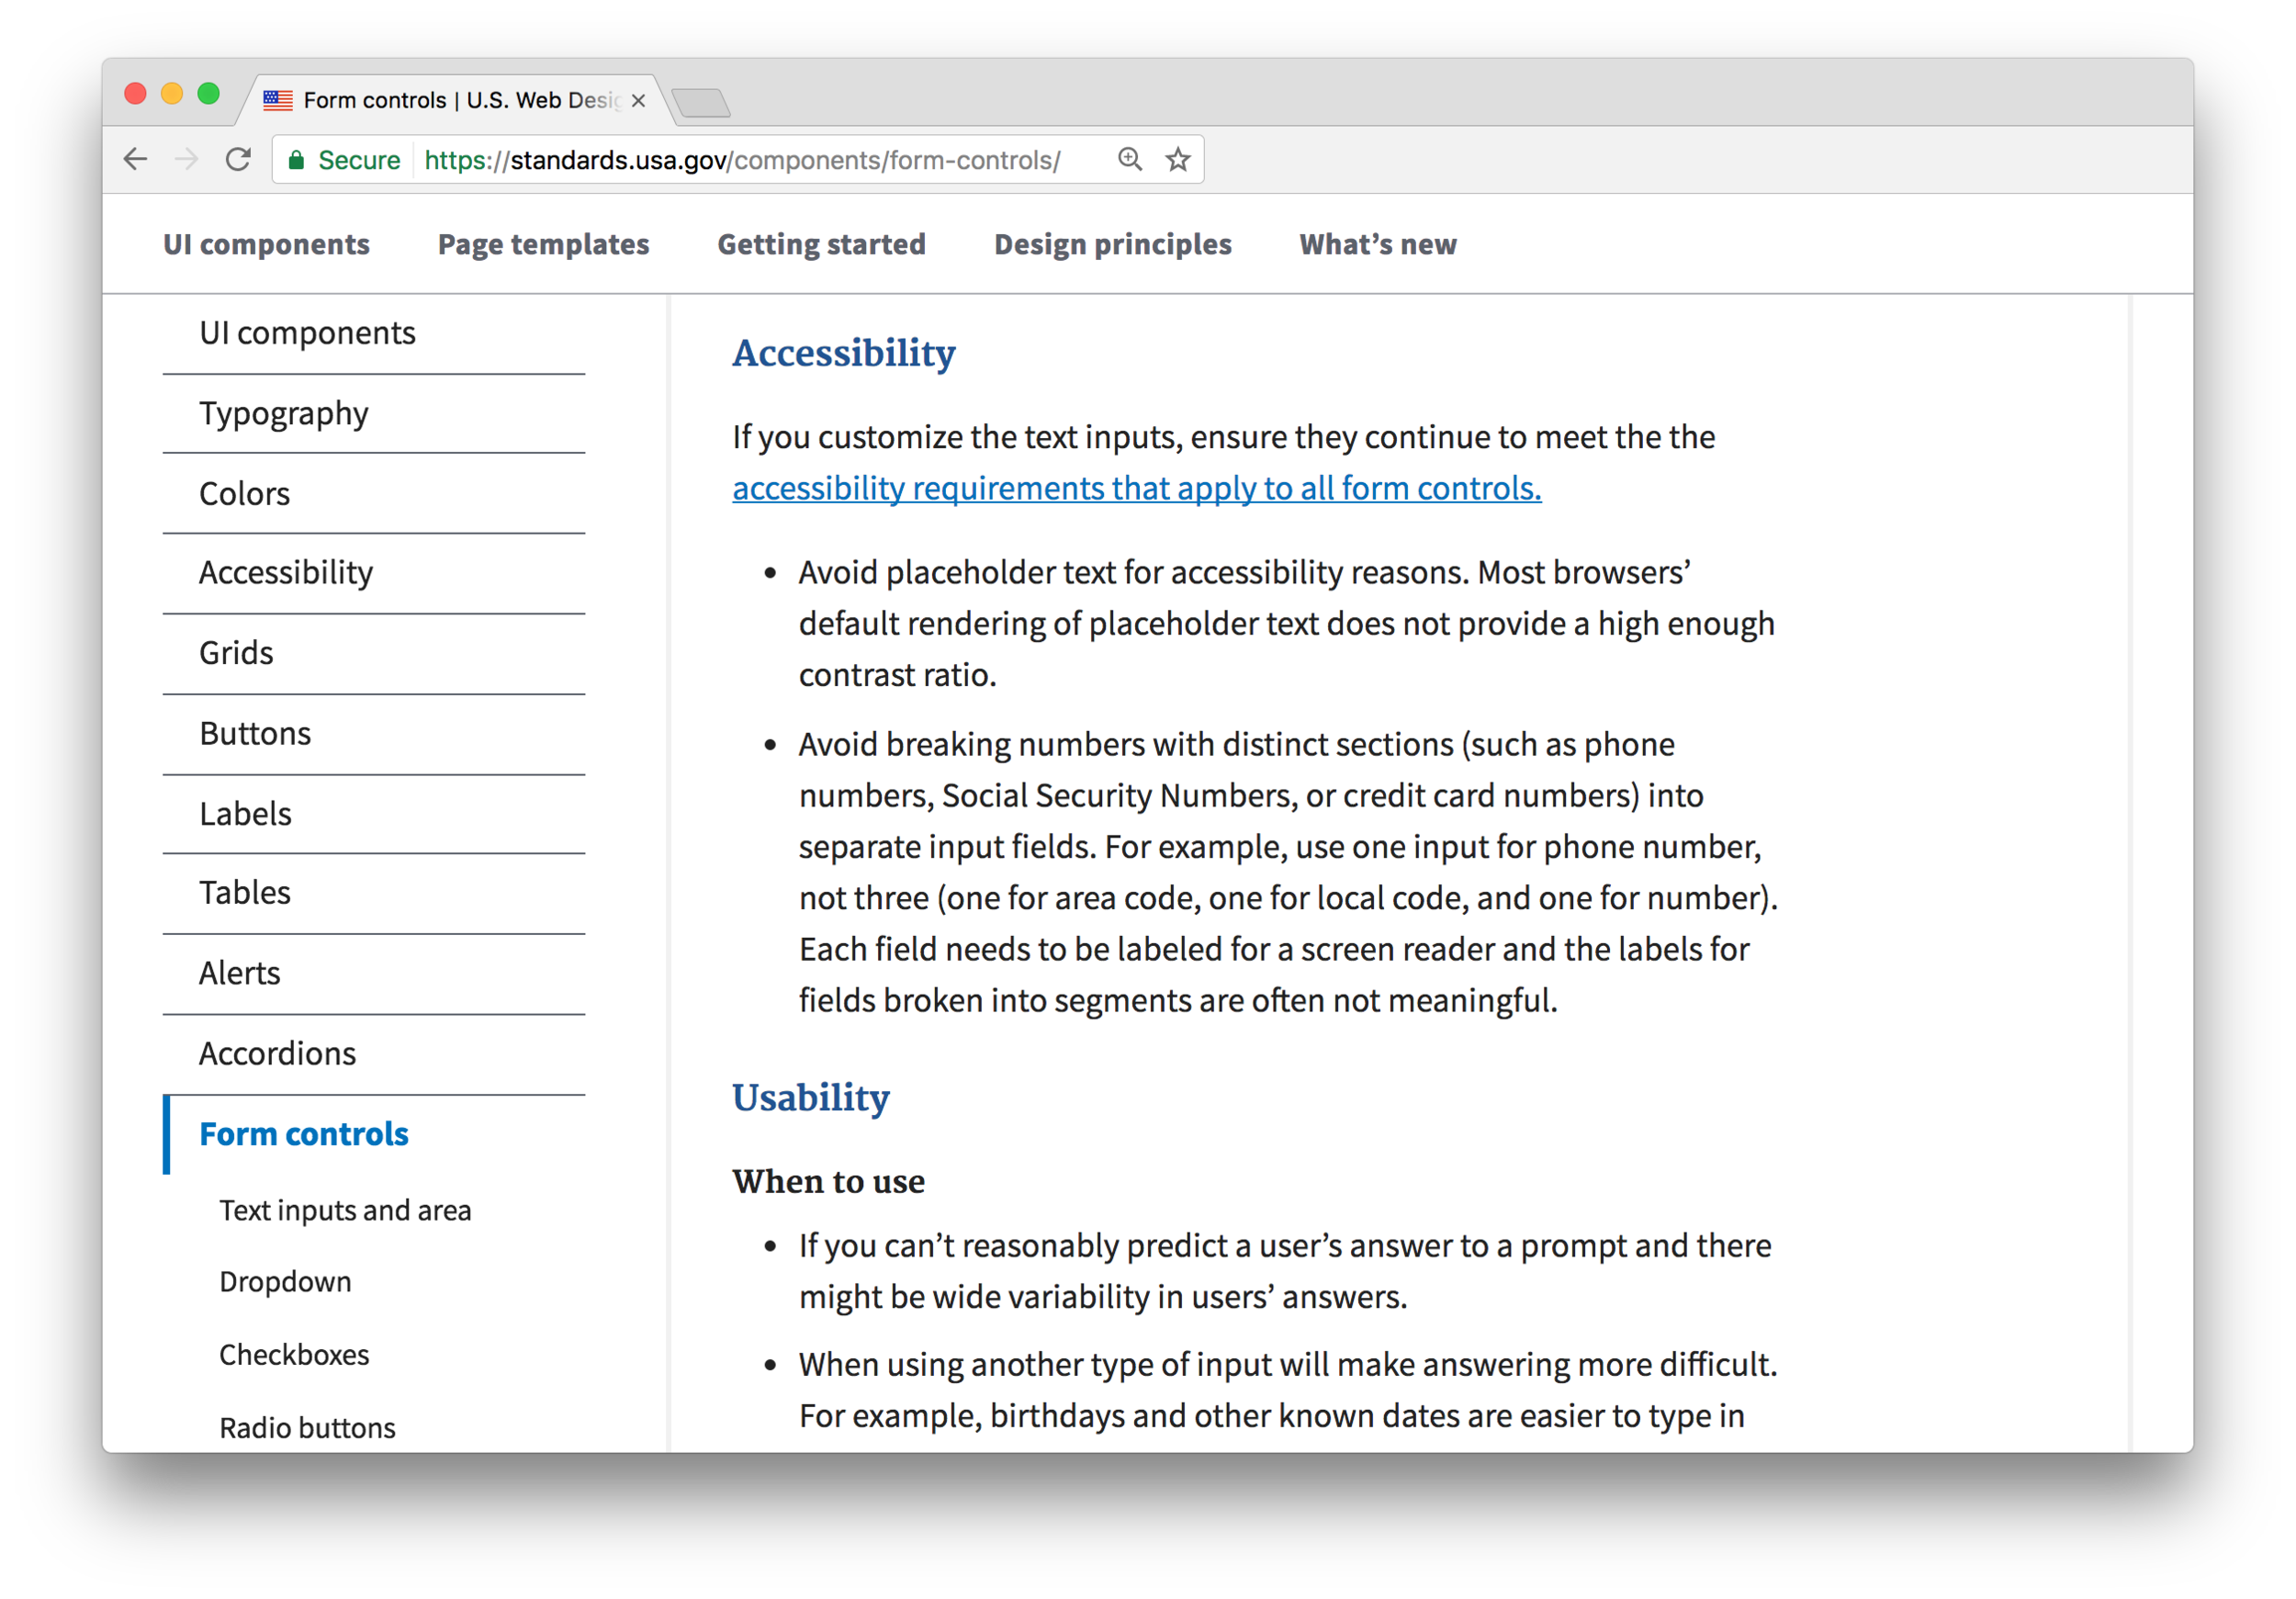 Accessibility and usability considerations for form controls